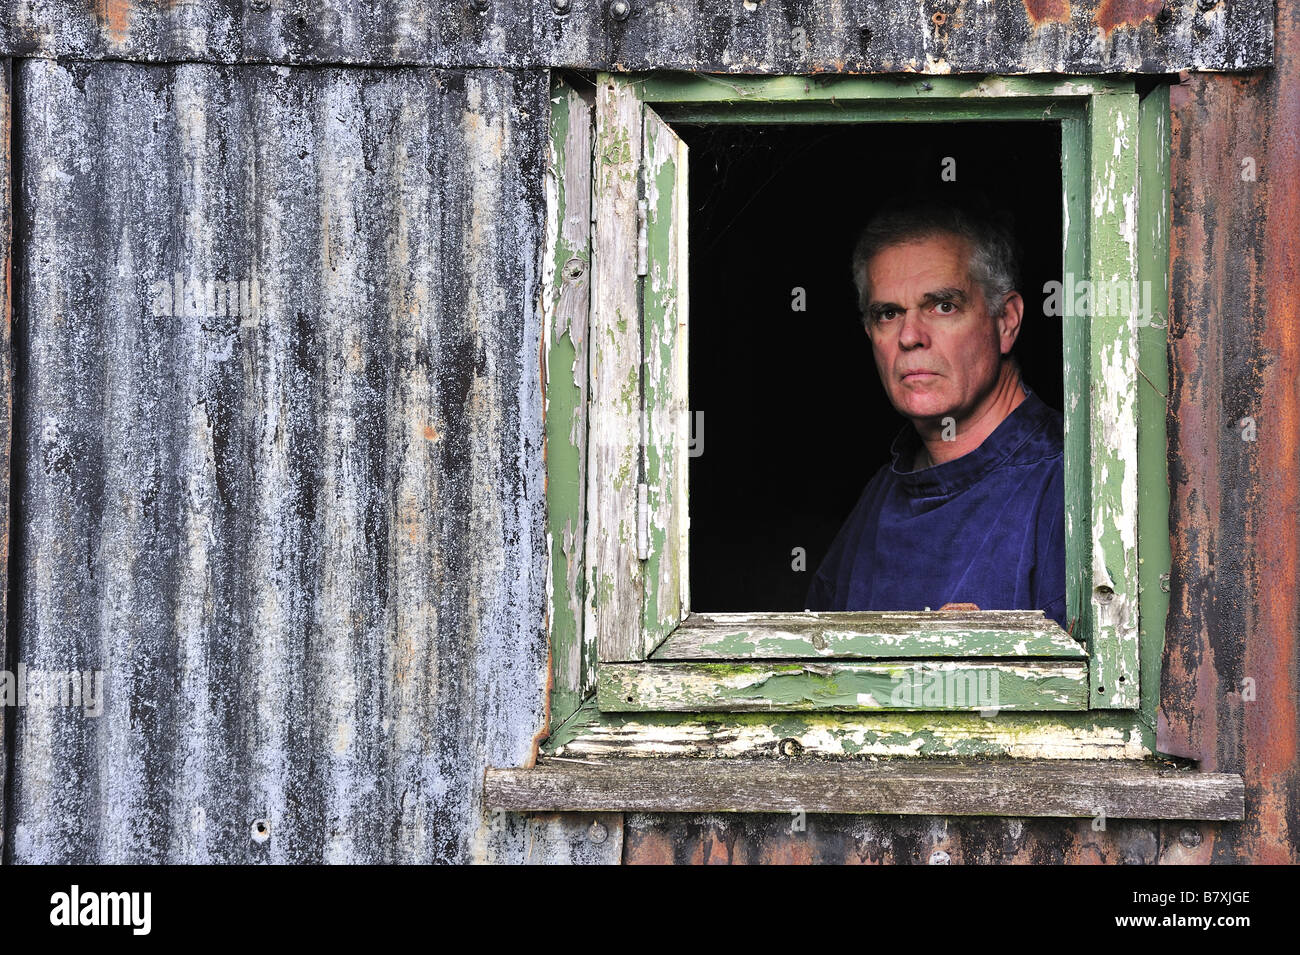 A man looks out through the rotting window of a derelict corrugated iron shed - Stock Image